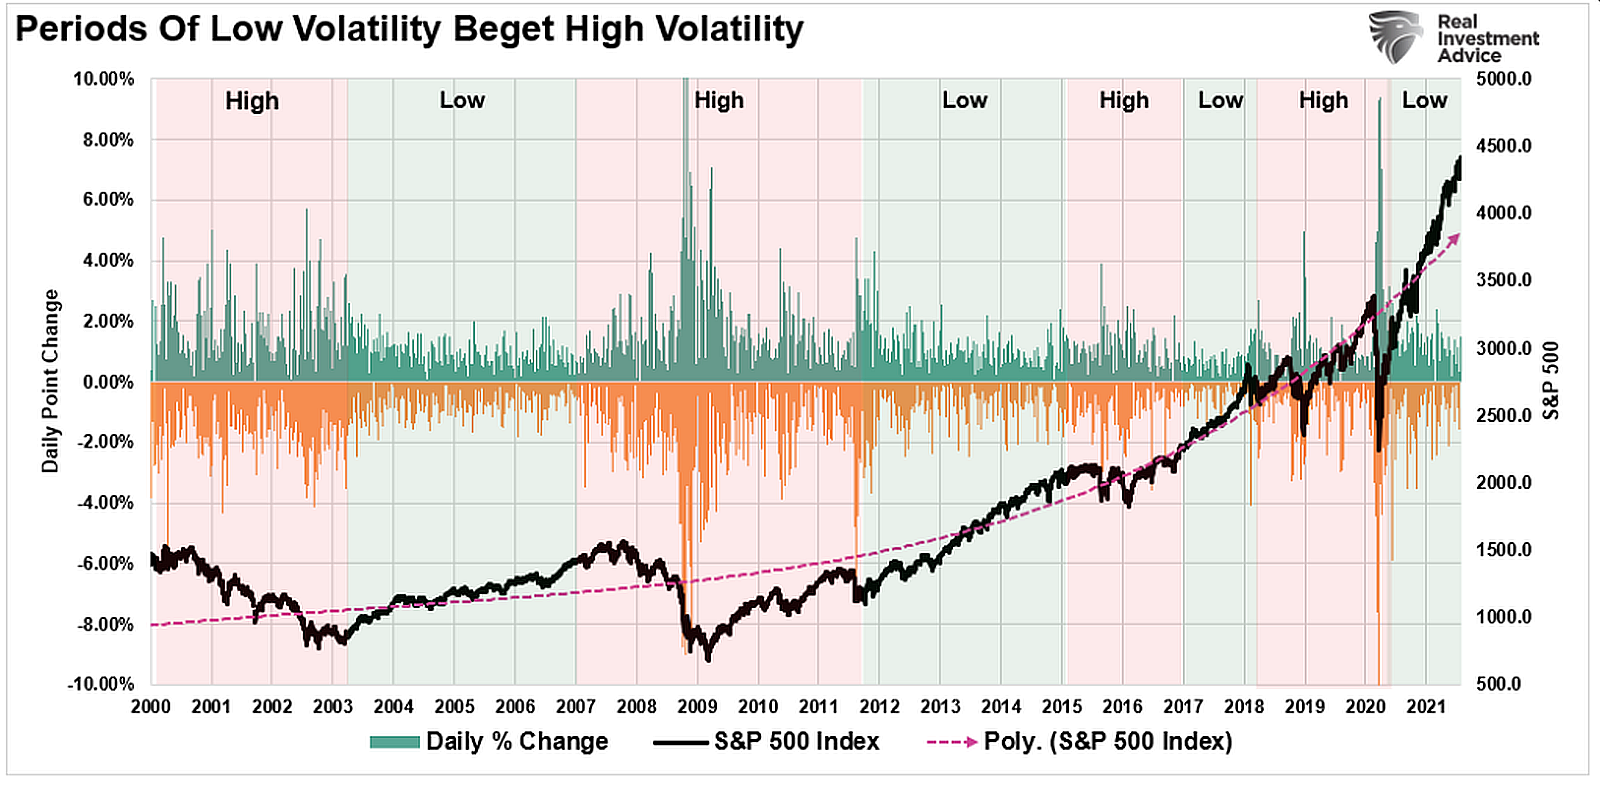 Periods-Of-Low-Volatility-Beget-High-Volatility